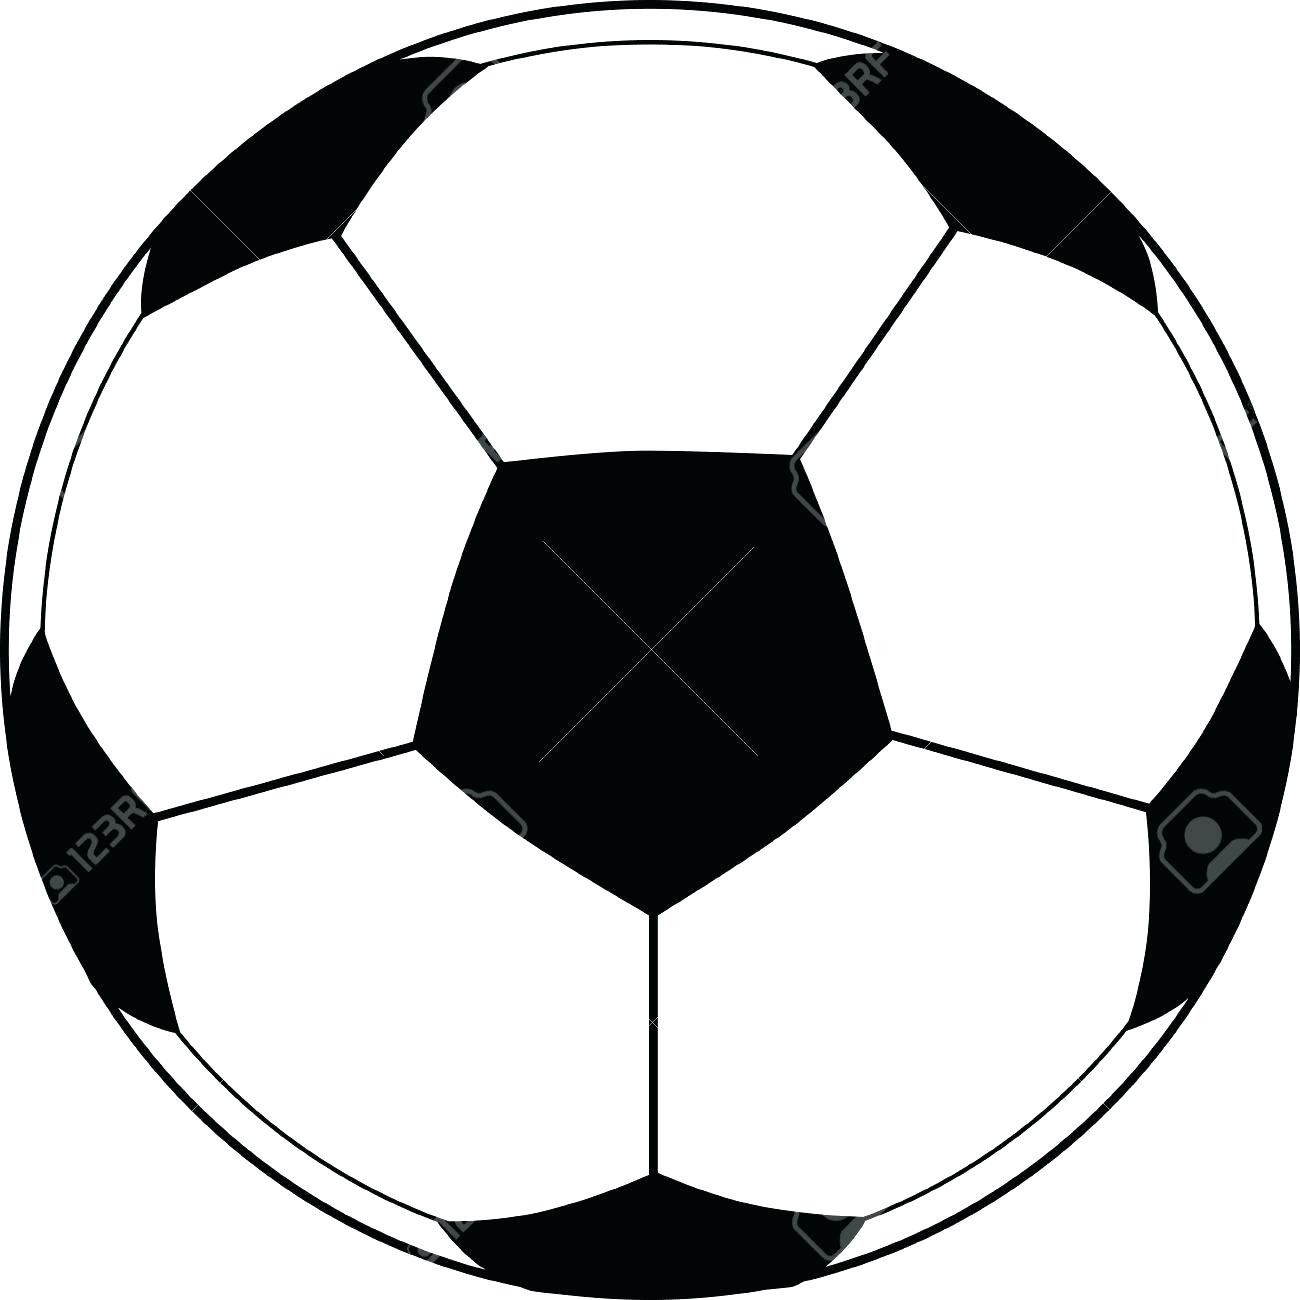 Big Soccer Ball Coloring Pages Printable Coloring Page For Kids Coloring Pages For Kids Printable Coloring Pages Coloring Pages